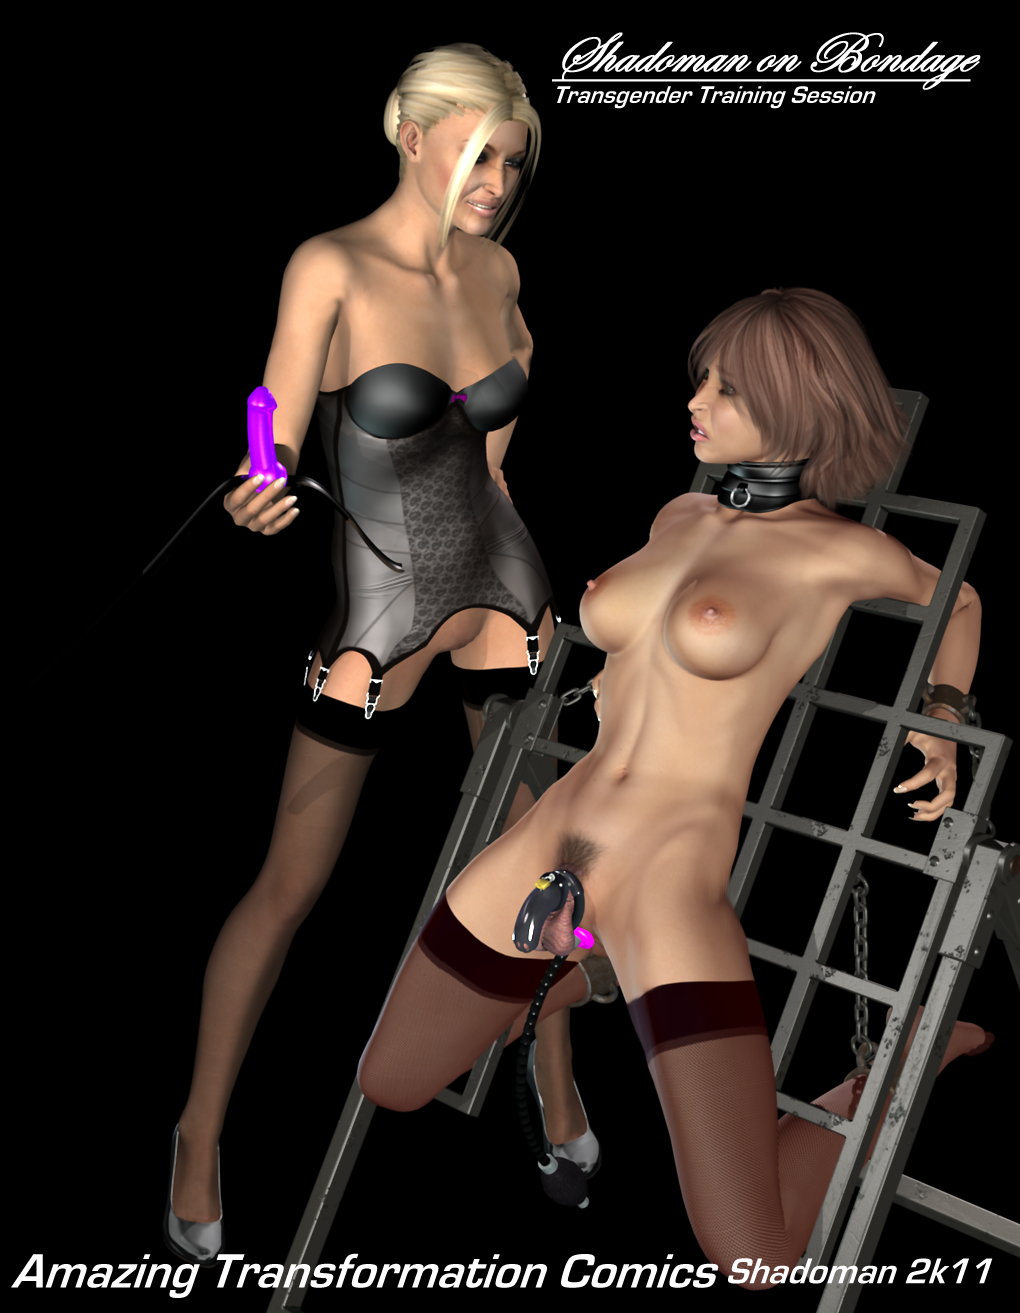 transexual bondage art